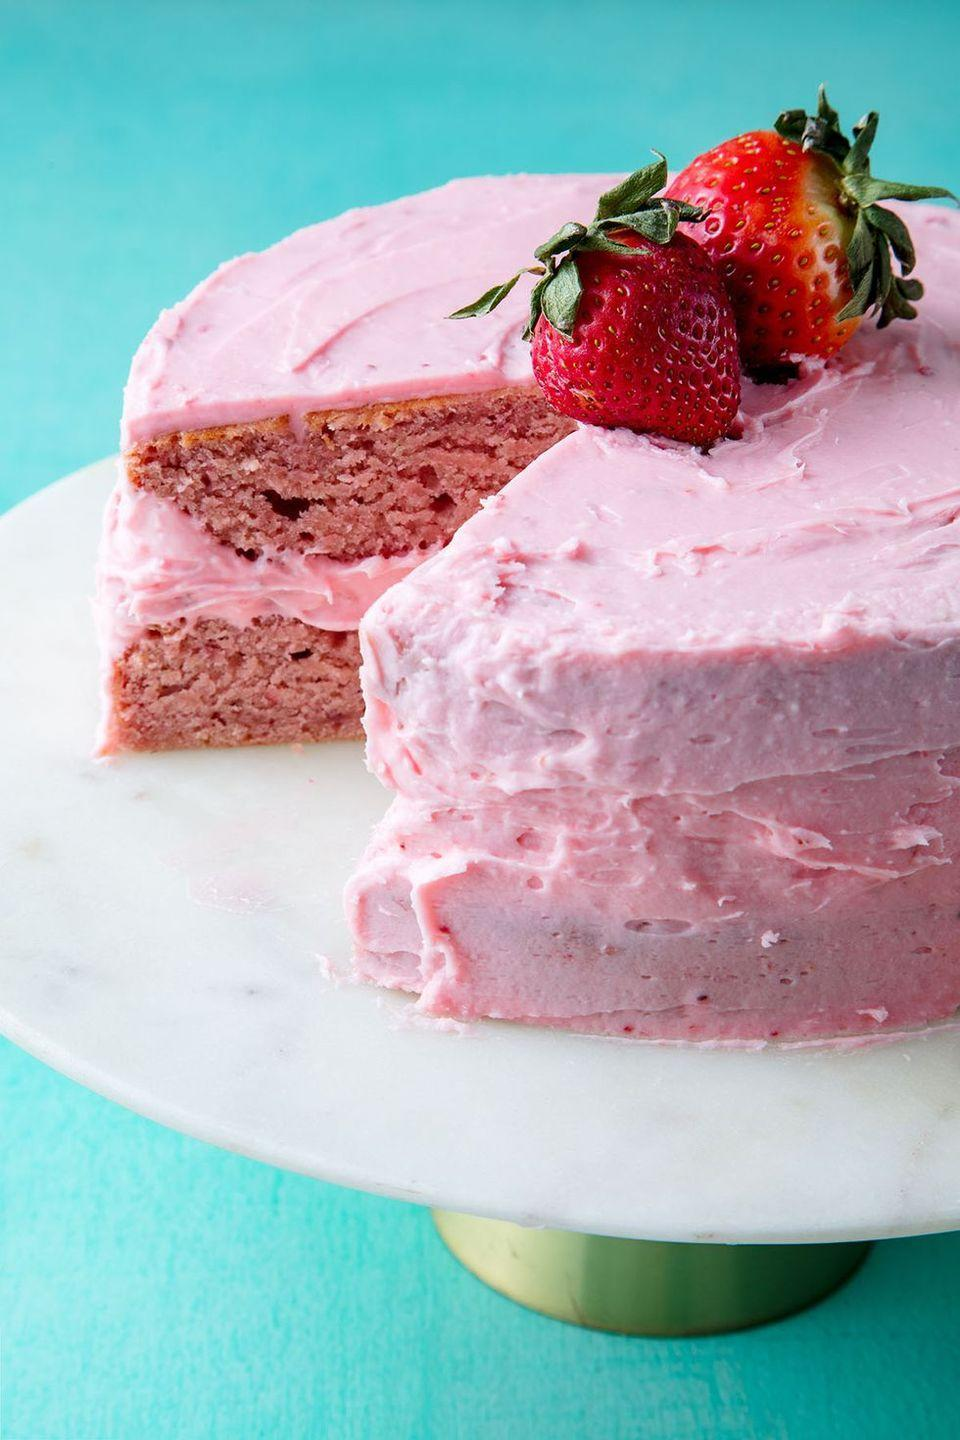 "<p>Why do chocolate and vanilla get all the fun?</p><p>Get the recipe from <a href=""https://www.delish.com/cooking/recipe-ideas/a19624120/homemade-strawberry-cake-recipe/"" rel=""nofollow noopener"" target=""_blank"" data-ylk=""slk:Delish"" class=""link rapid-noclick-resp"">Delish</a>.</p>"